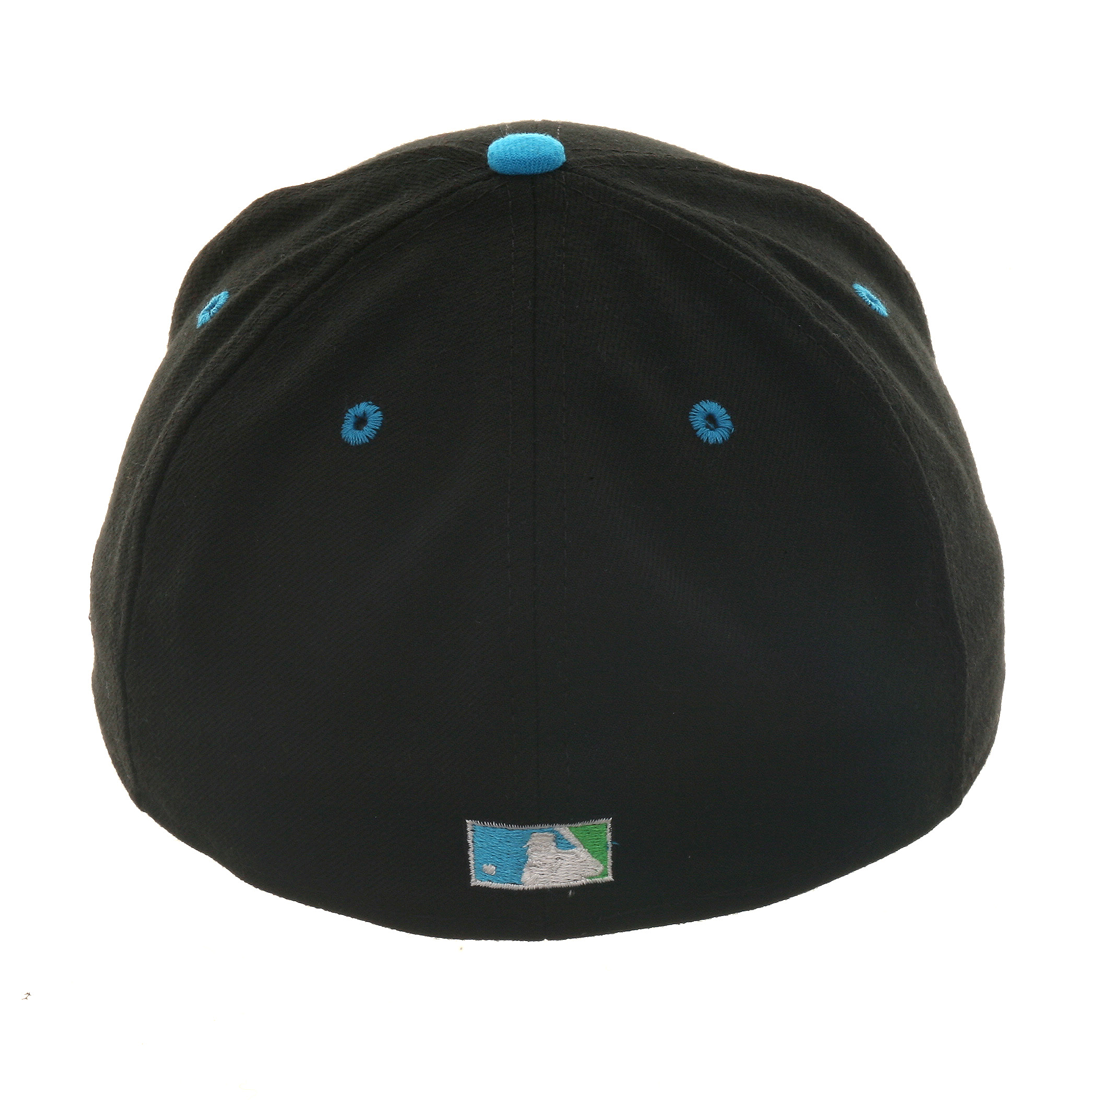 Exclusive New Era 59Fifty Tampa Bay Devil Rays Hat - 2T Black, Light Blue